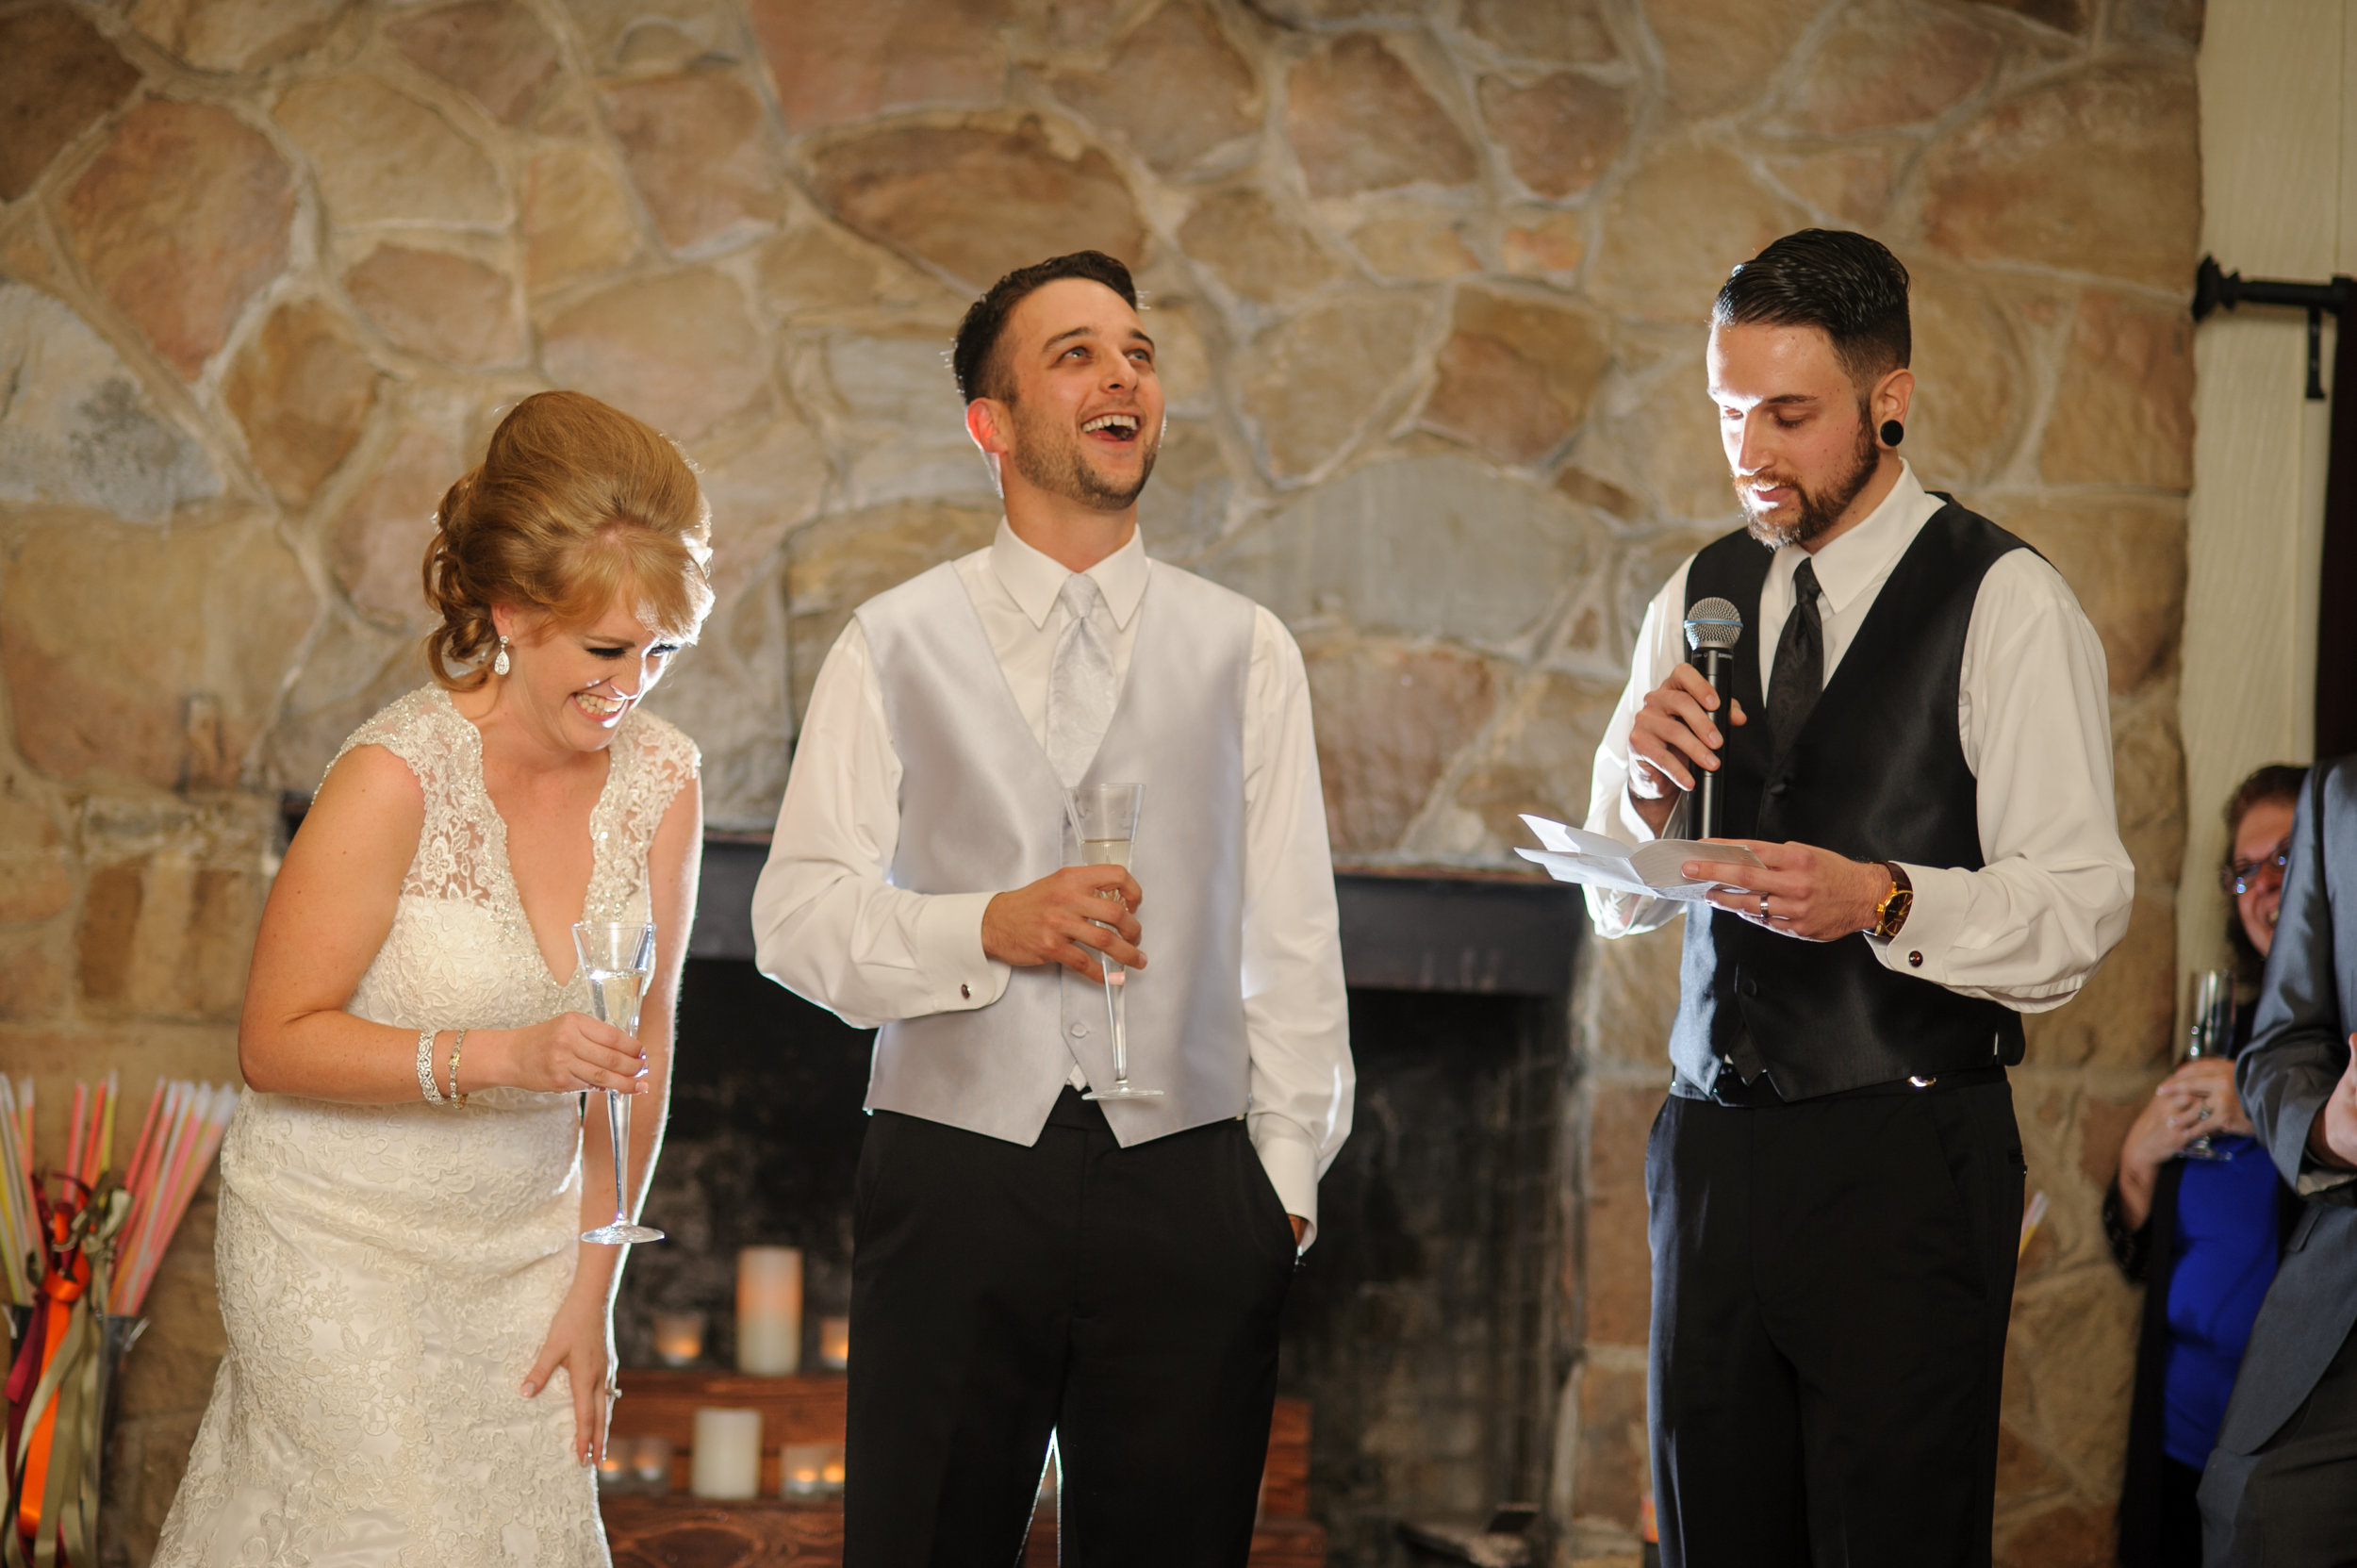 sammi-matt-026-the-mountain-terrace-woodside-wedding-photographer-katherine-nicole-photography.JPG